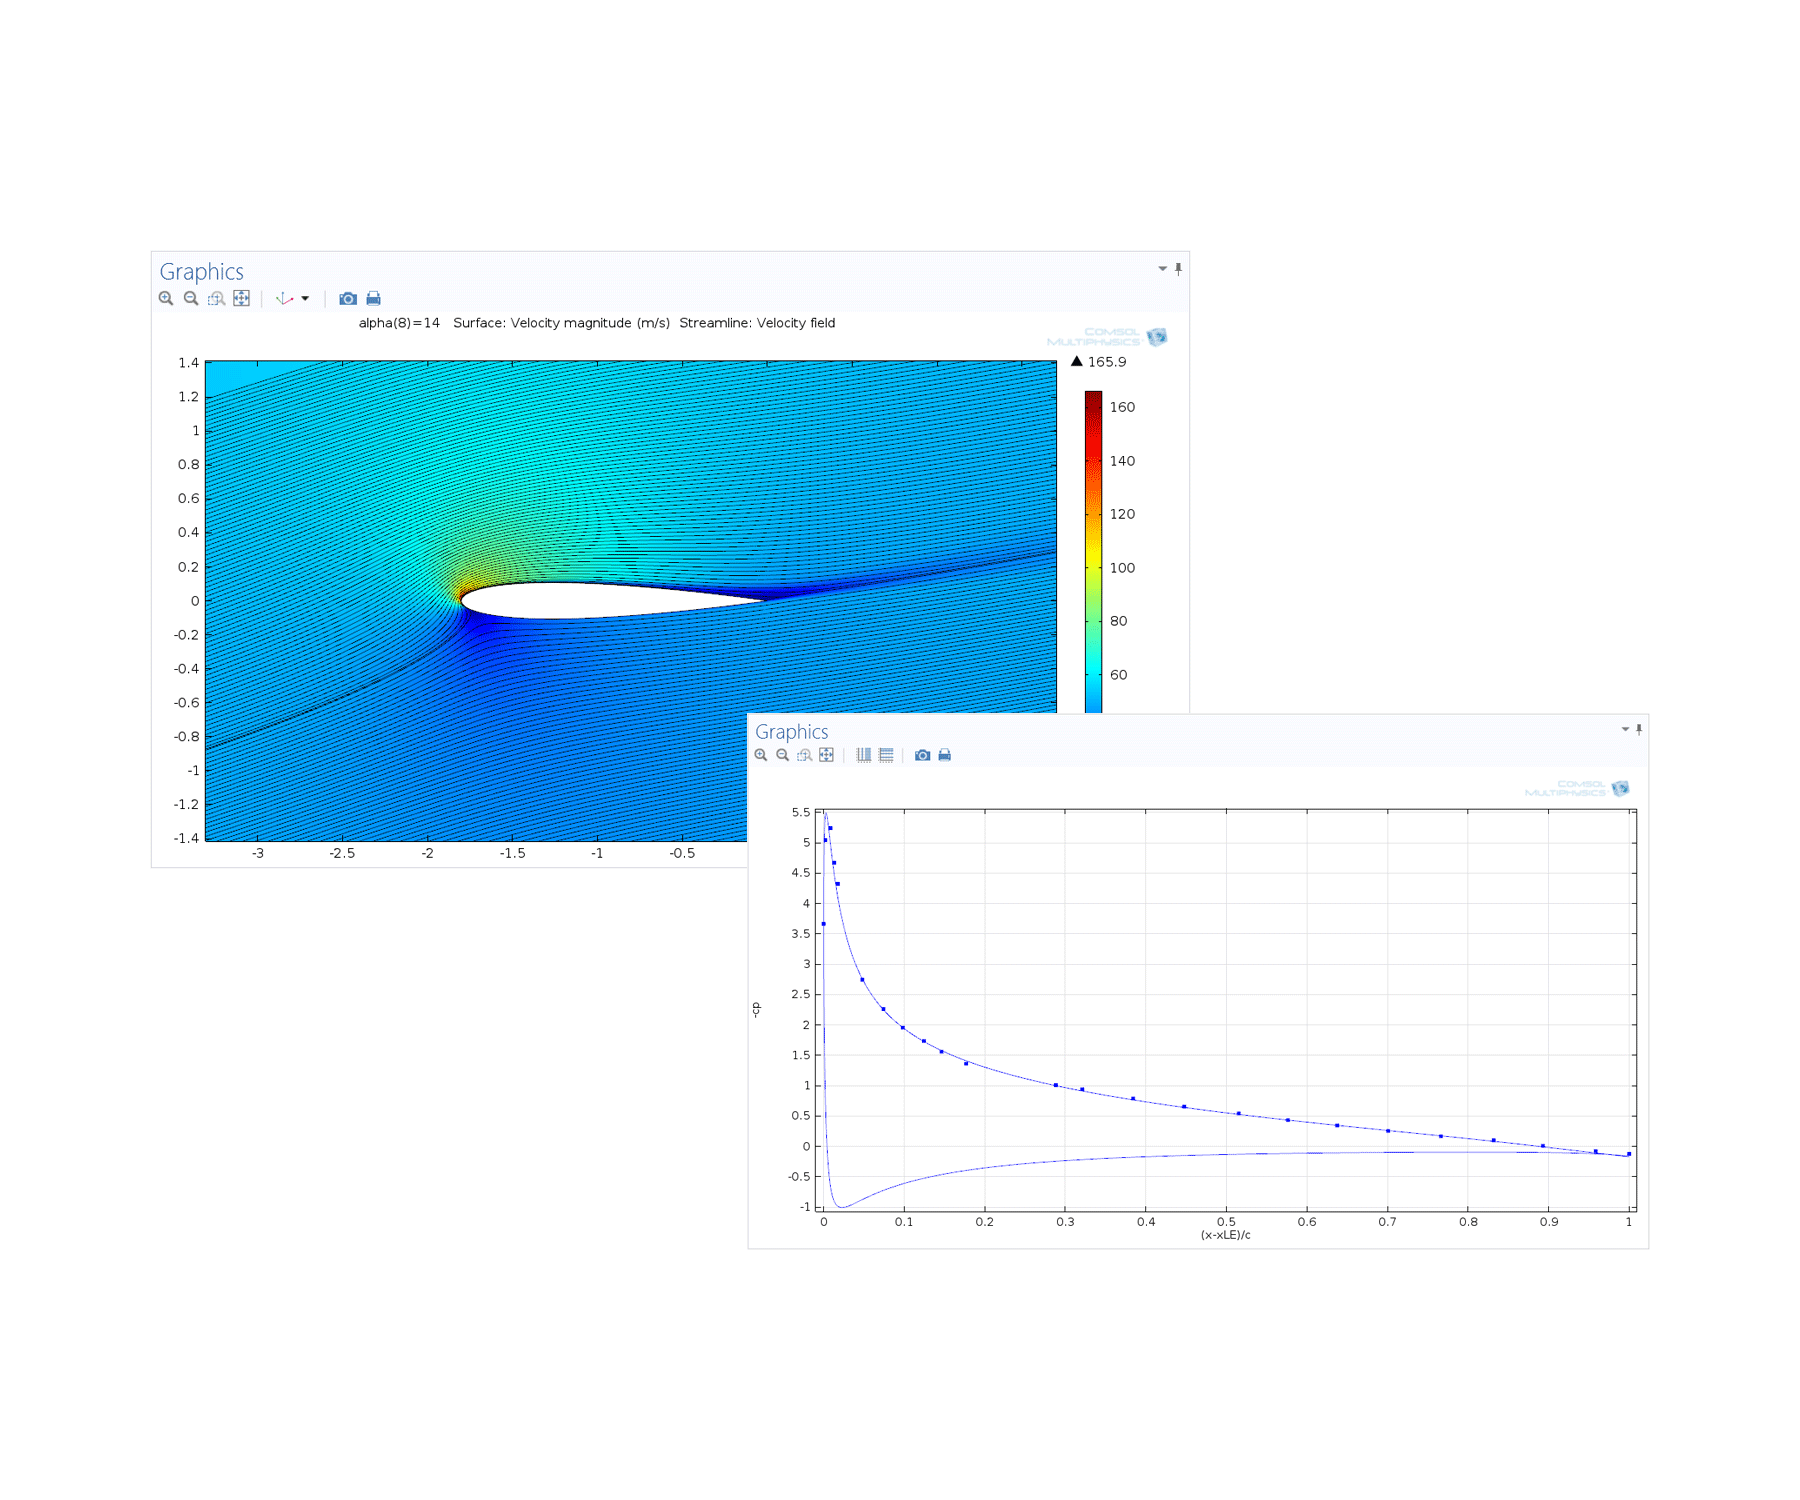 "Turbulent Flow: Benchmark study of the SST Turbulence Model on flow past an airfoil. The image shows the computational (line) and experimental (marks) results for the pressure coefficient along the airfoil where experimental data was only gathered on the low-pressure side [Ref: N. Gregory and C. L. O'Reilly, ""Low-Speed Aerodynamic Characteristics of NACA 0012 Aerofoil Section, including the Effects of Upper-Surface Roughness Simulating Hoar Frost,"" A.R.C., R. & M. No. 3726, 1970]."